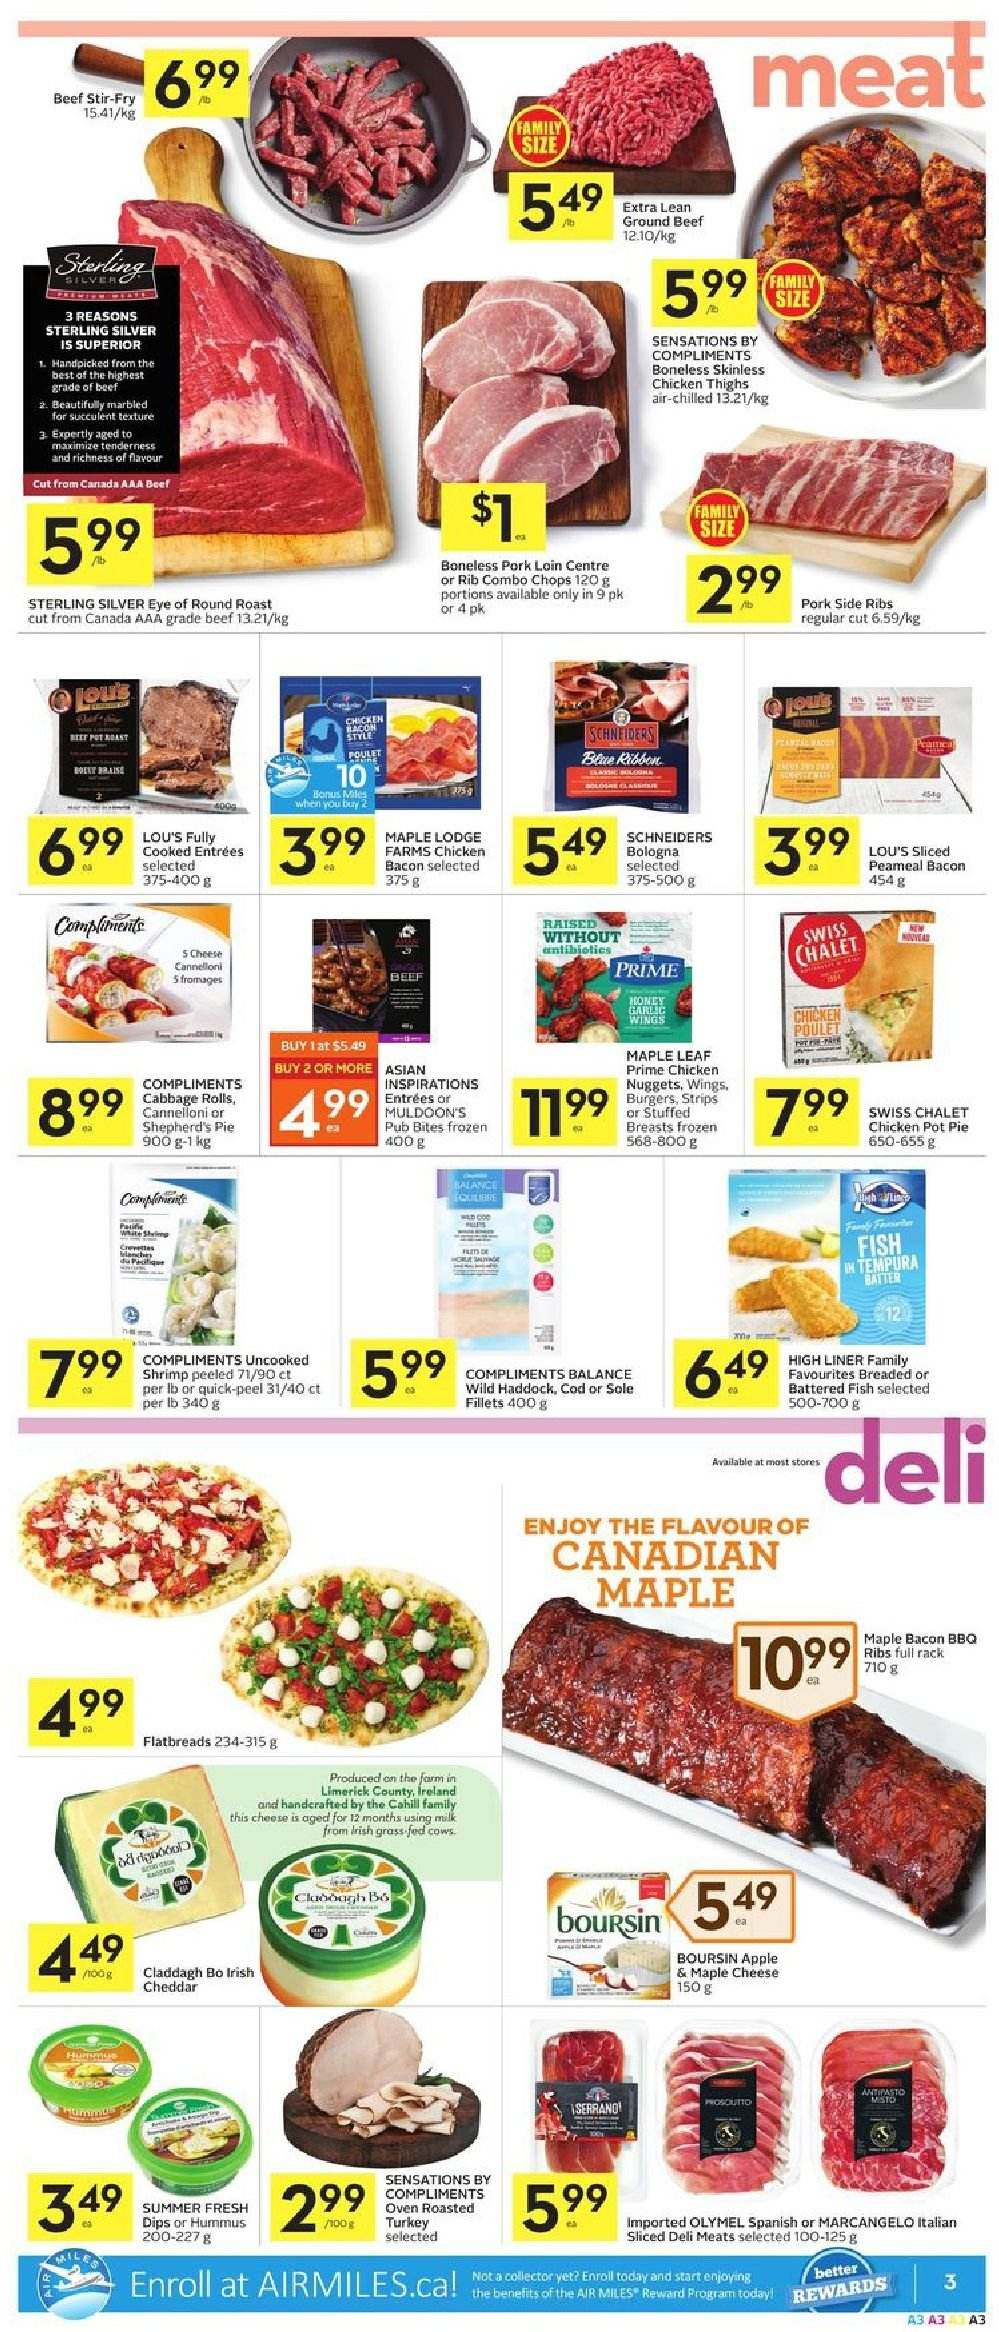 Foodland Flyer  - March 07, 2019 - March 13, 2019. Page 3.